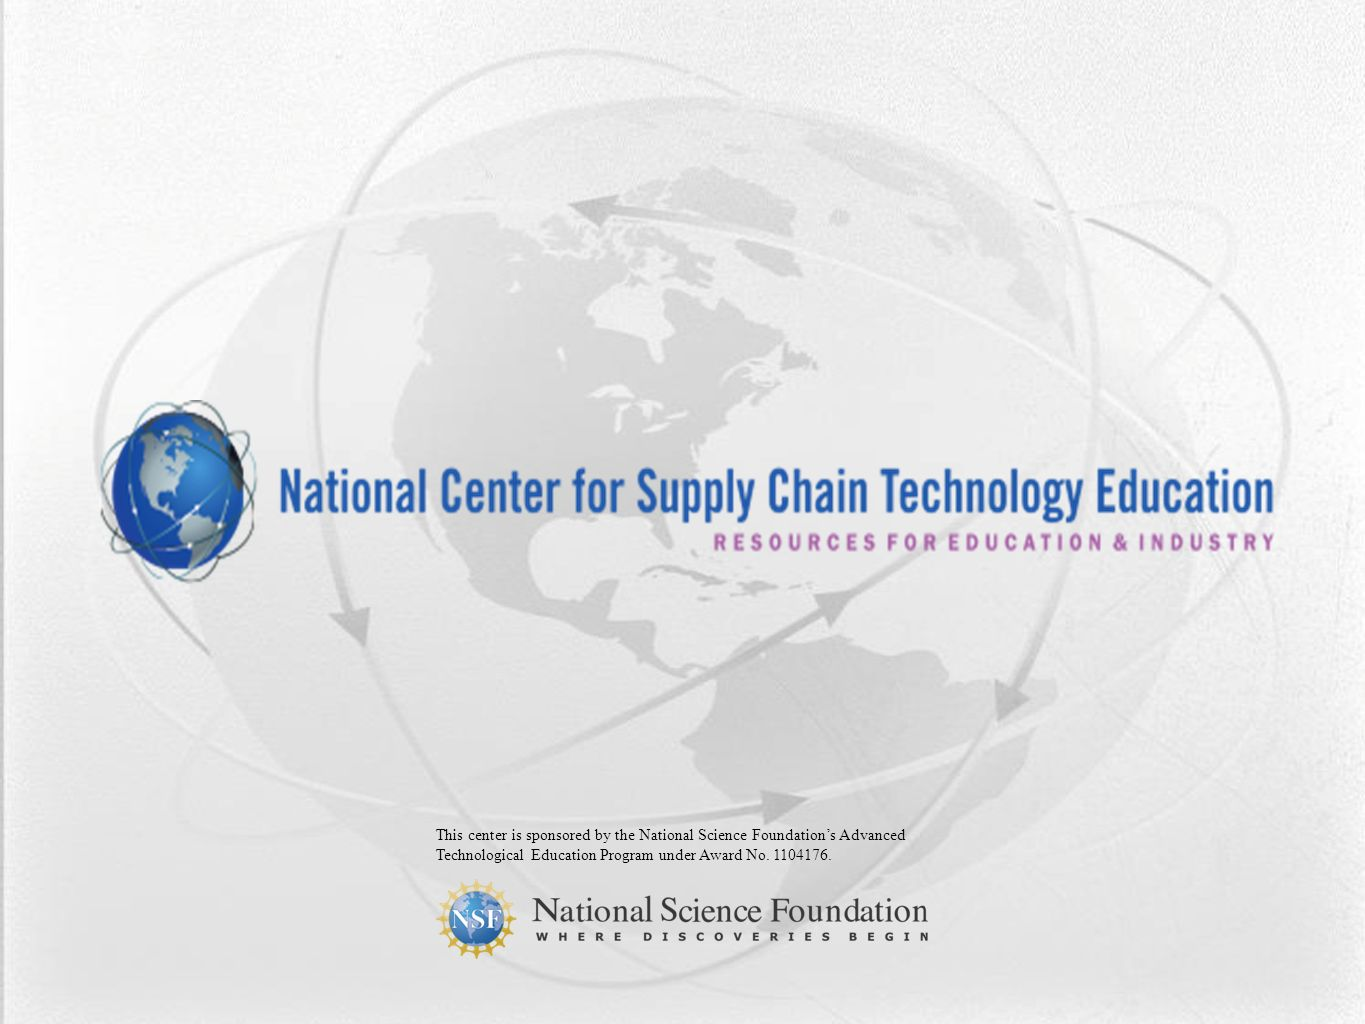 This center is sponsored by the National Science Foundations Advanced Technological Education Program under Award No.